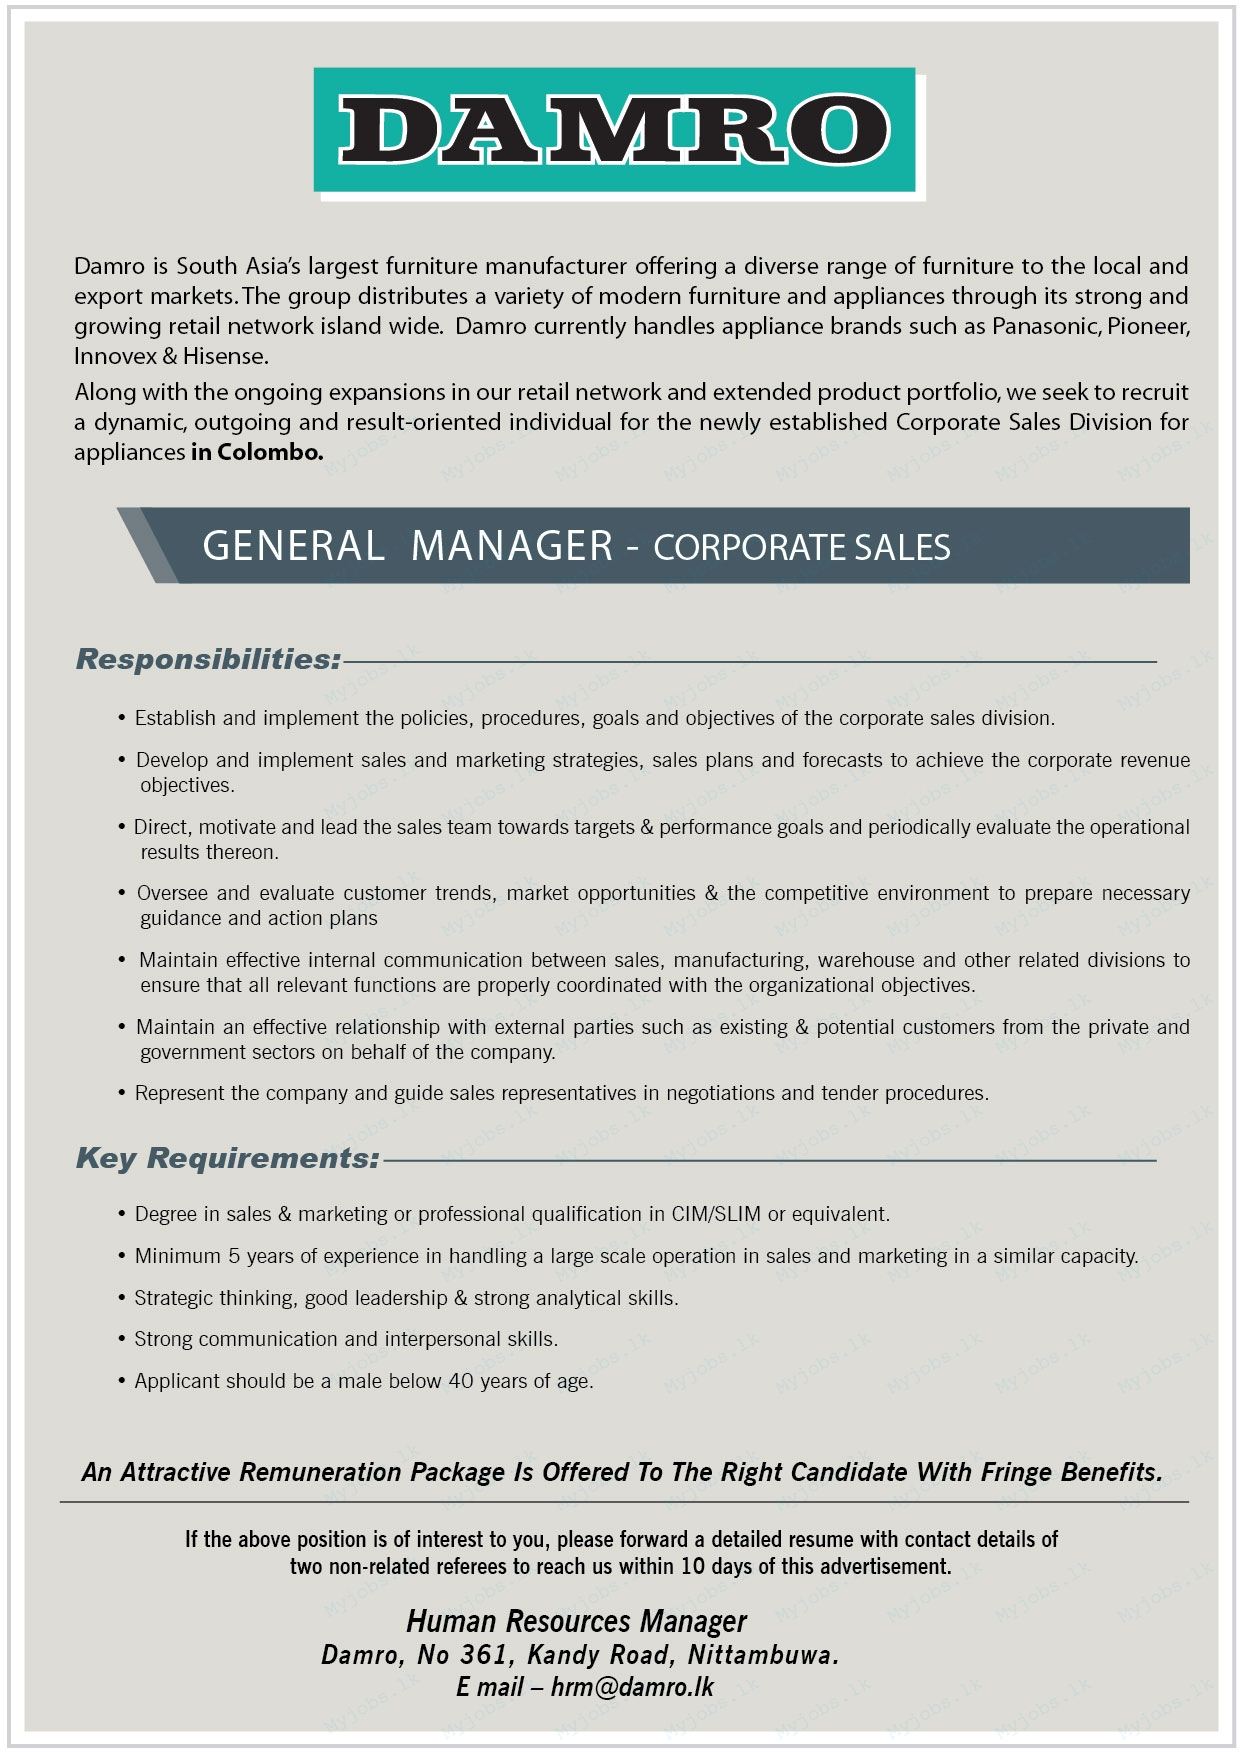 General Manager - Corporate Sales